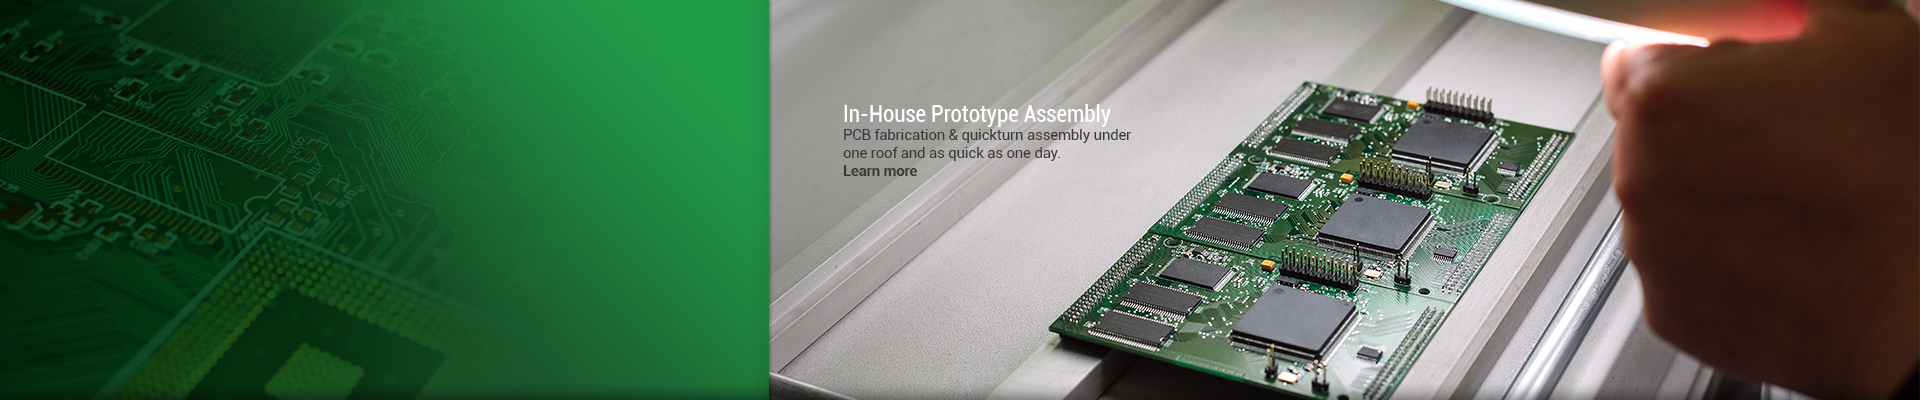 Printed Circuit Board Manufacturer & PCB Assembly | Advanced